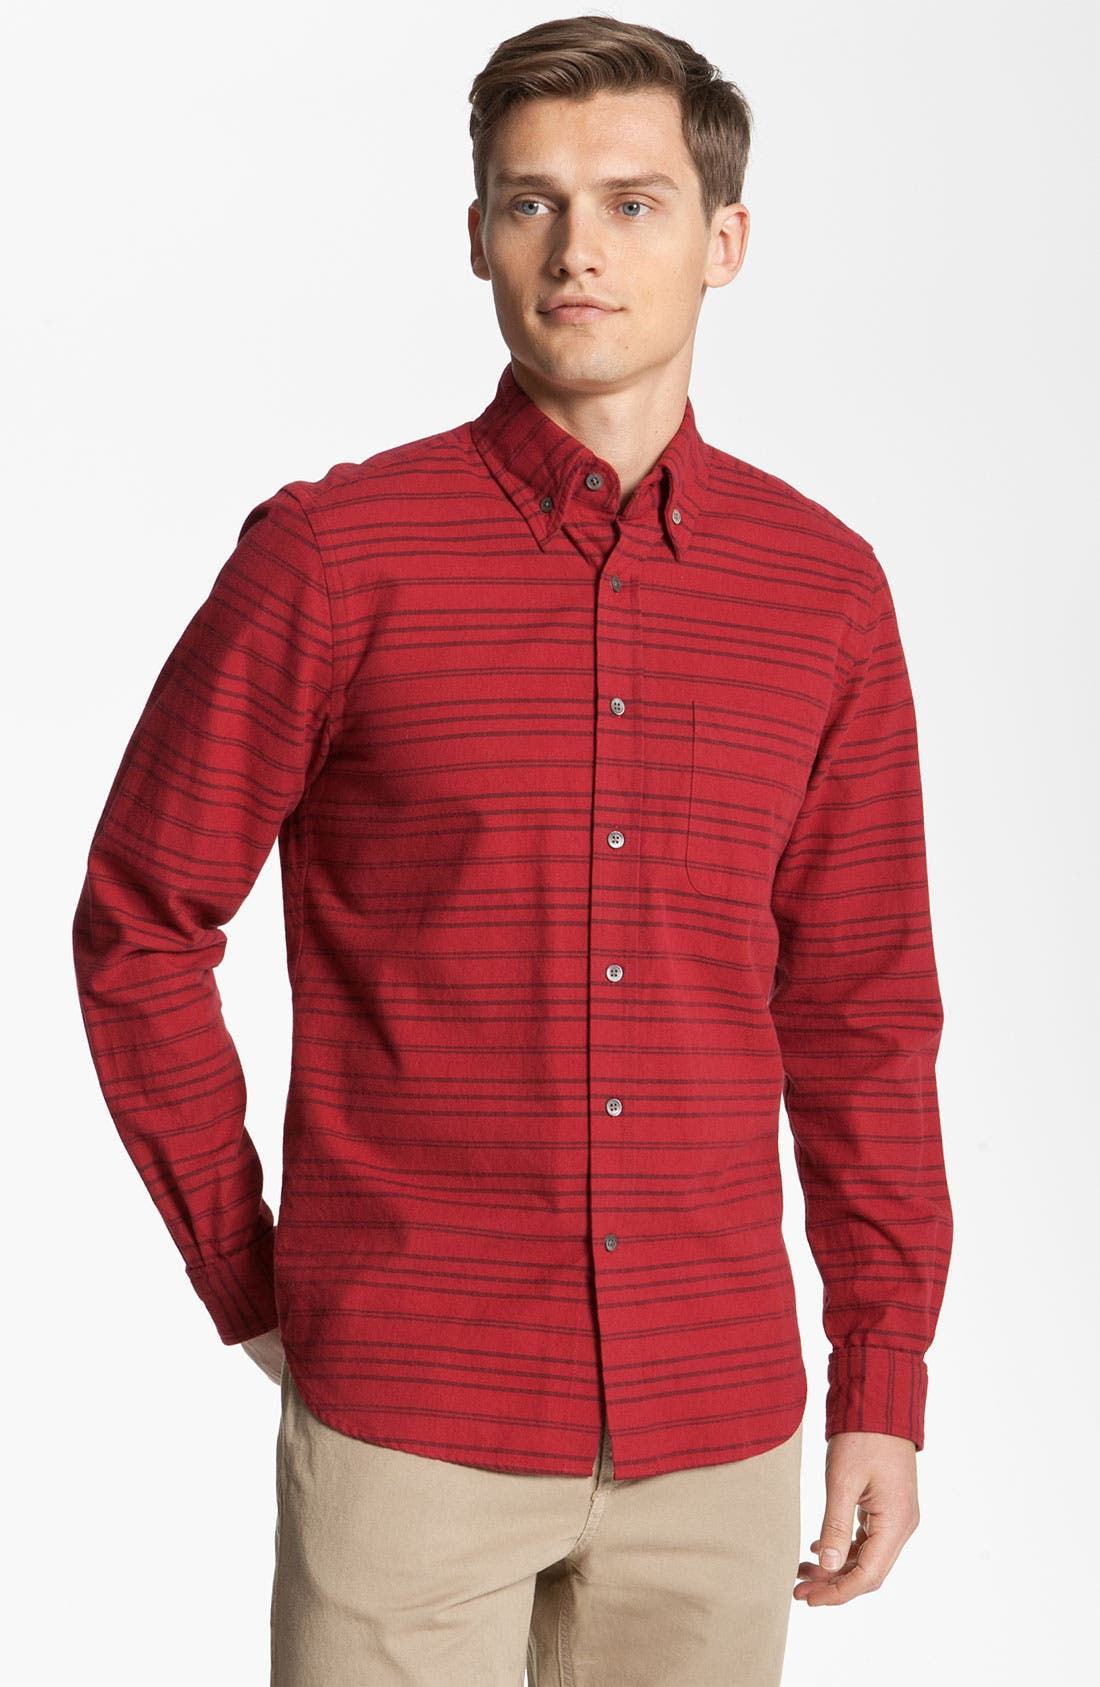 Alternate Image 1 Selected - Steven Alan 'Collegiate' Stripe Woven Shirt